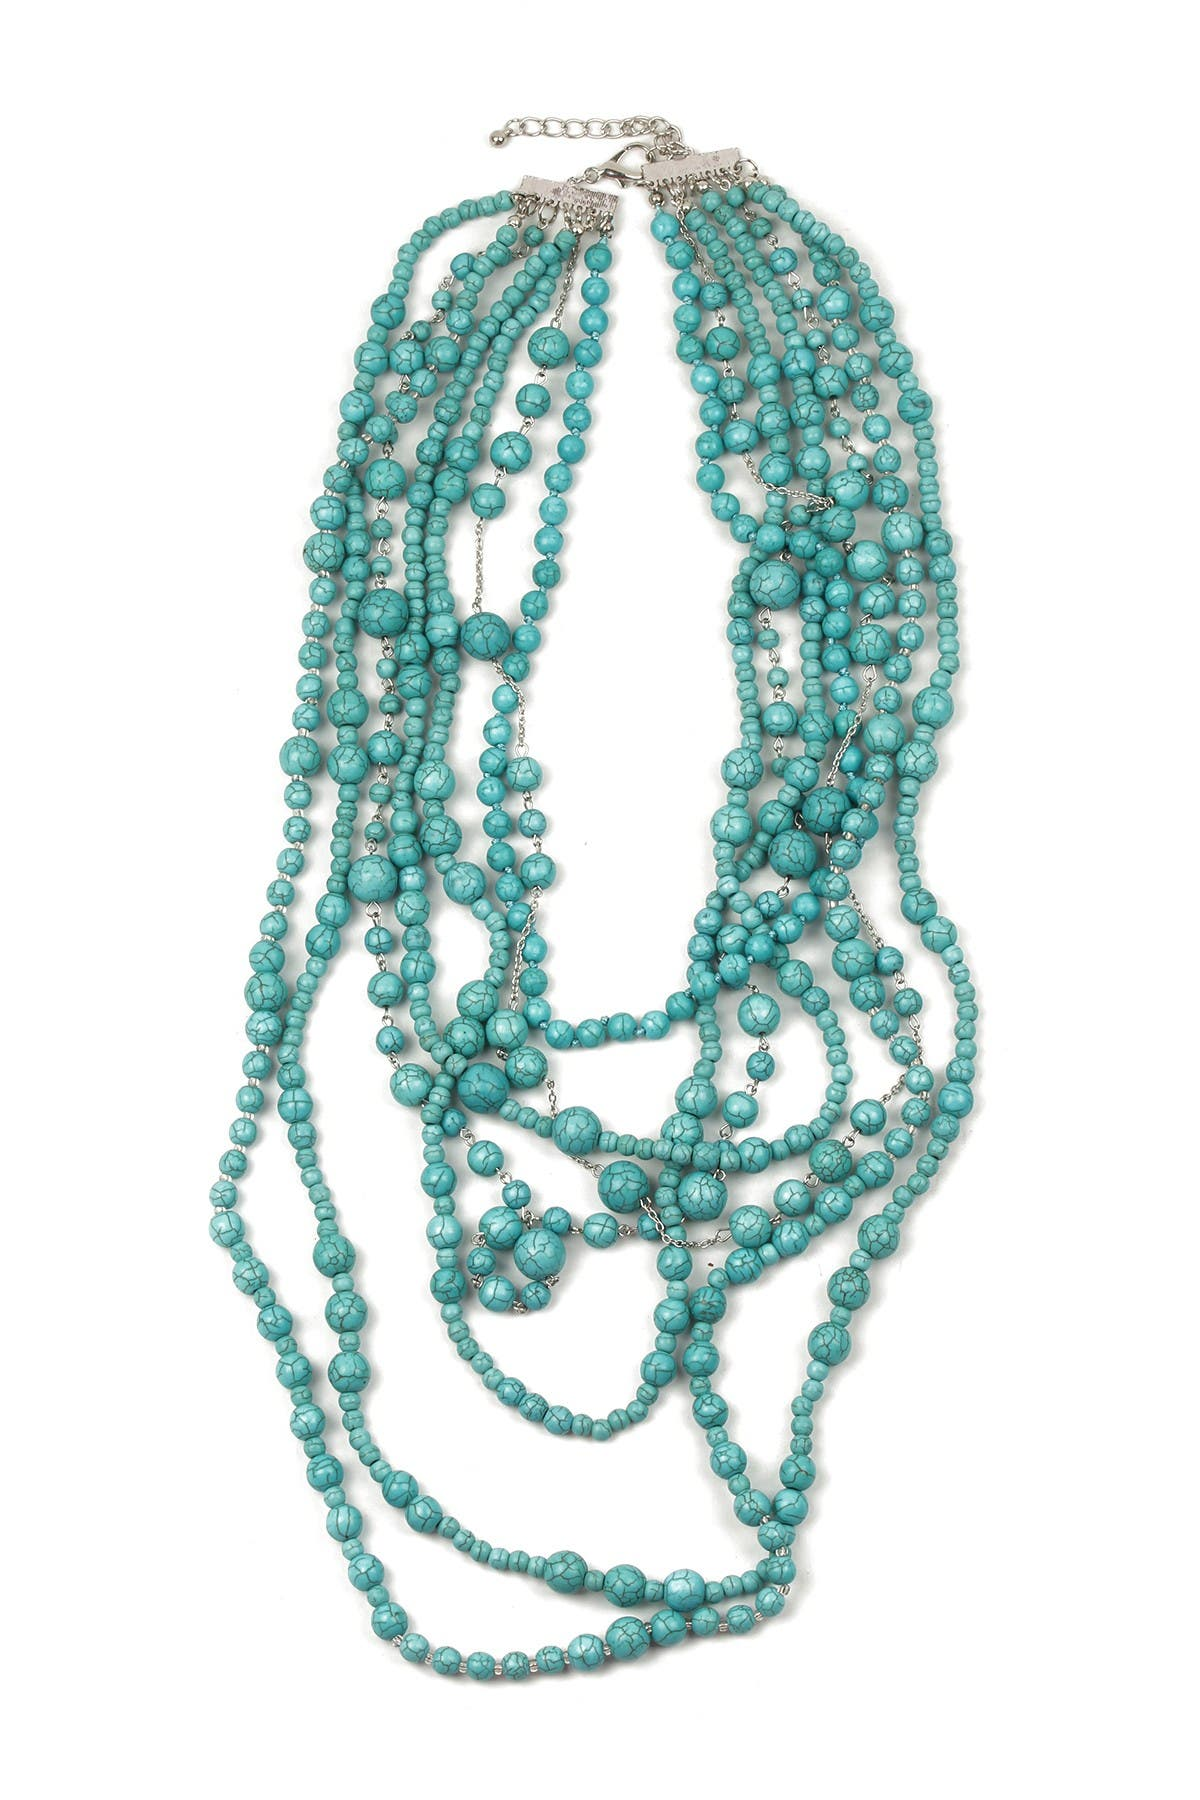 Image of Eye Candy Los Angeles Turquoise Bead Multi-Strand Necklace